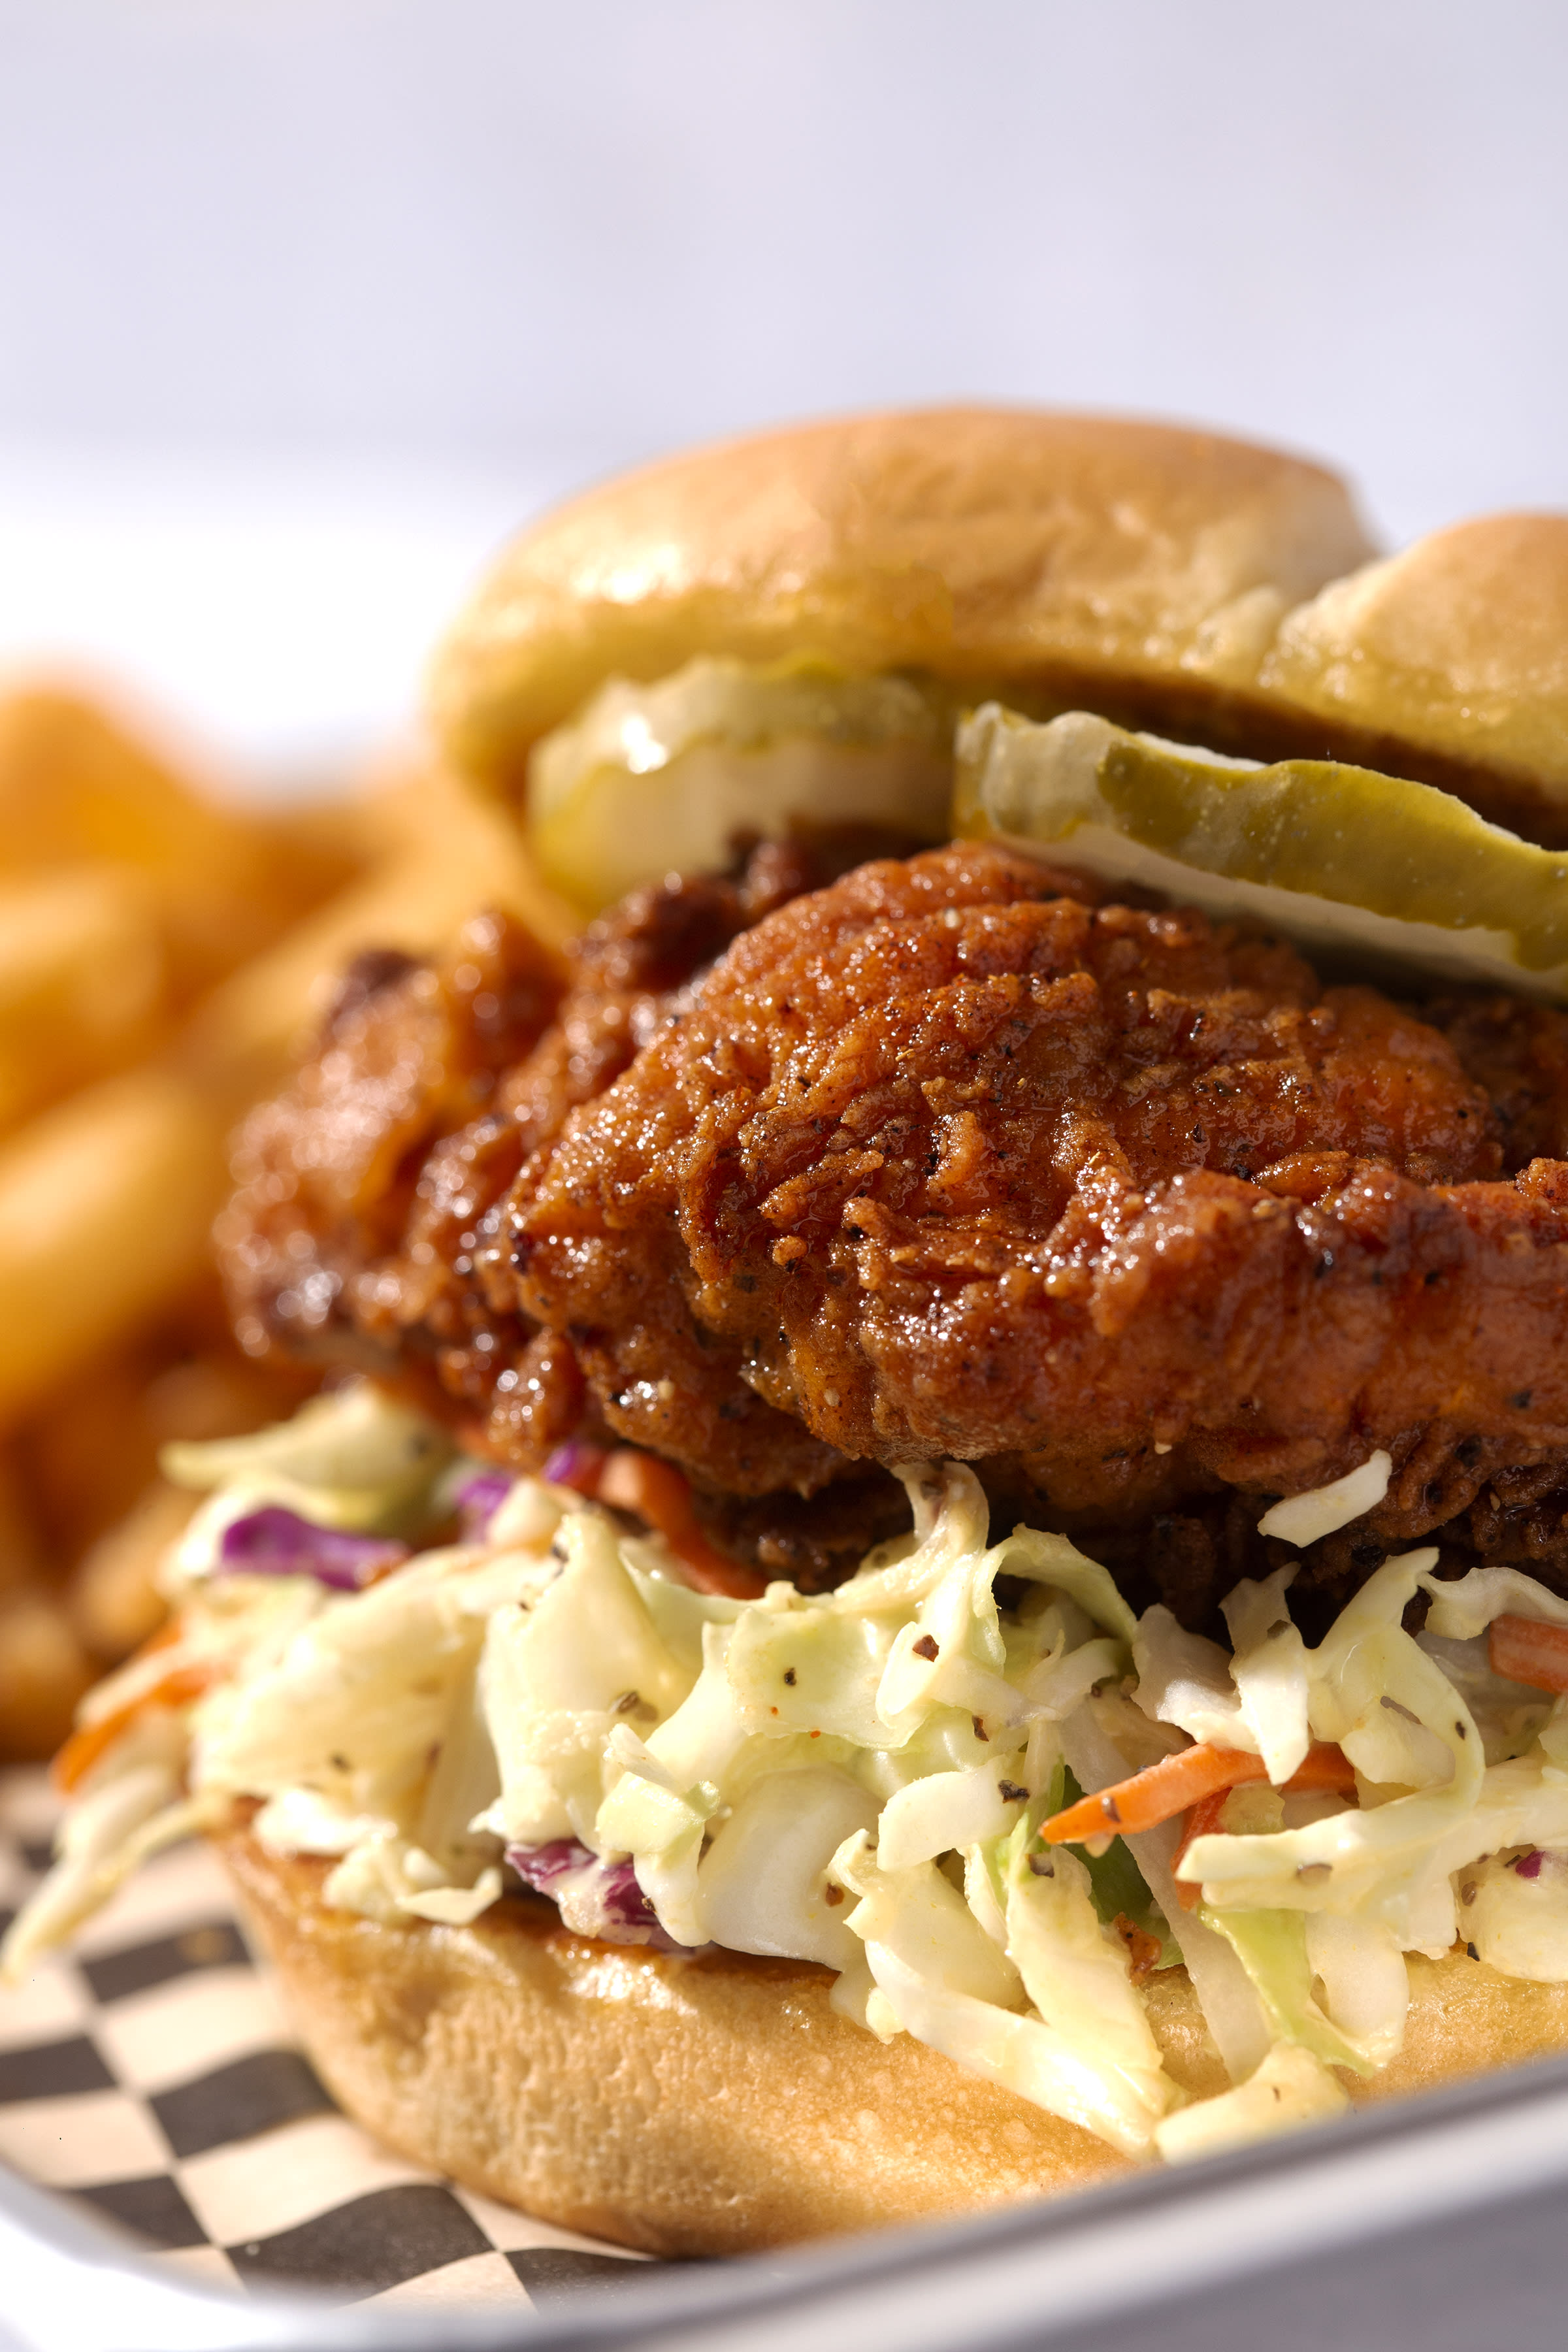 Clucks Nashville Hot Chicken Will Open on October 15, Bringing a Unique and Delicious Menu